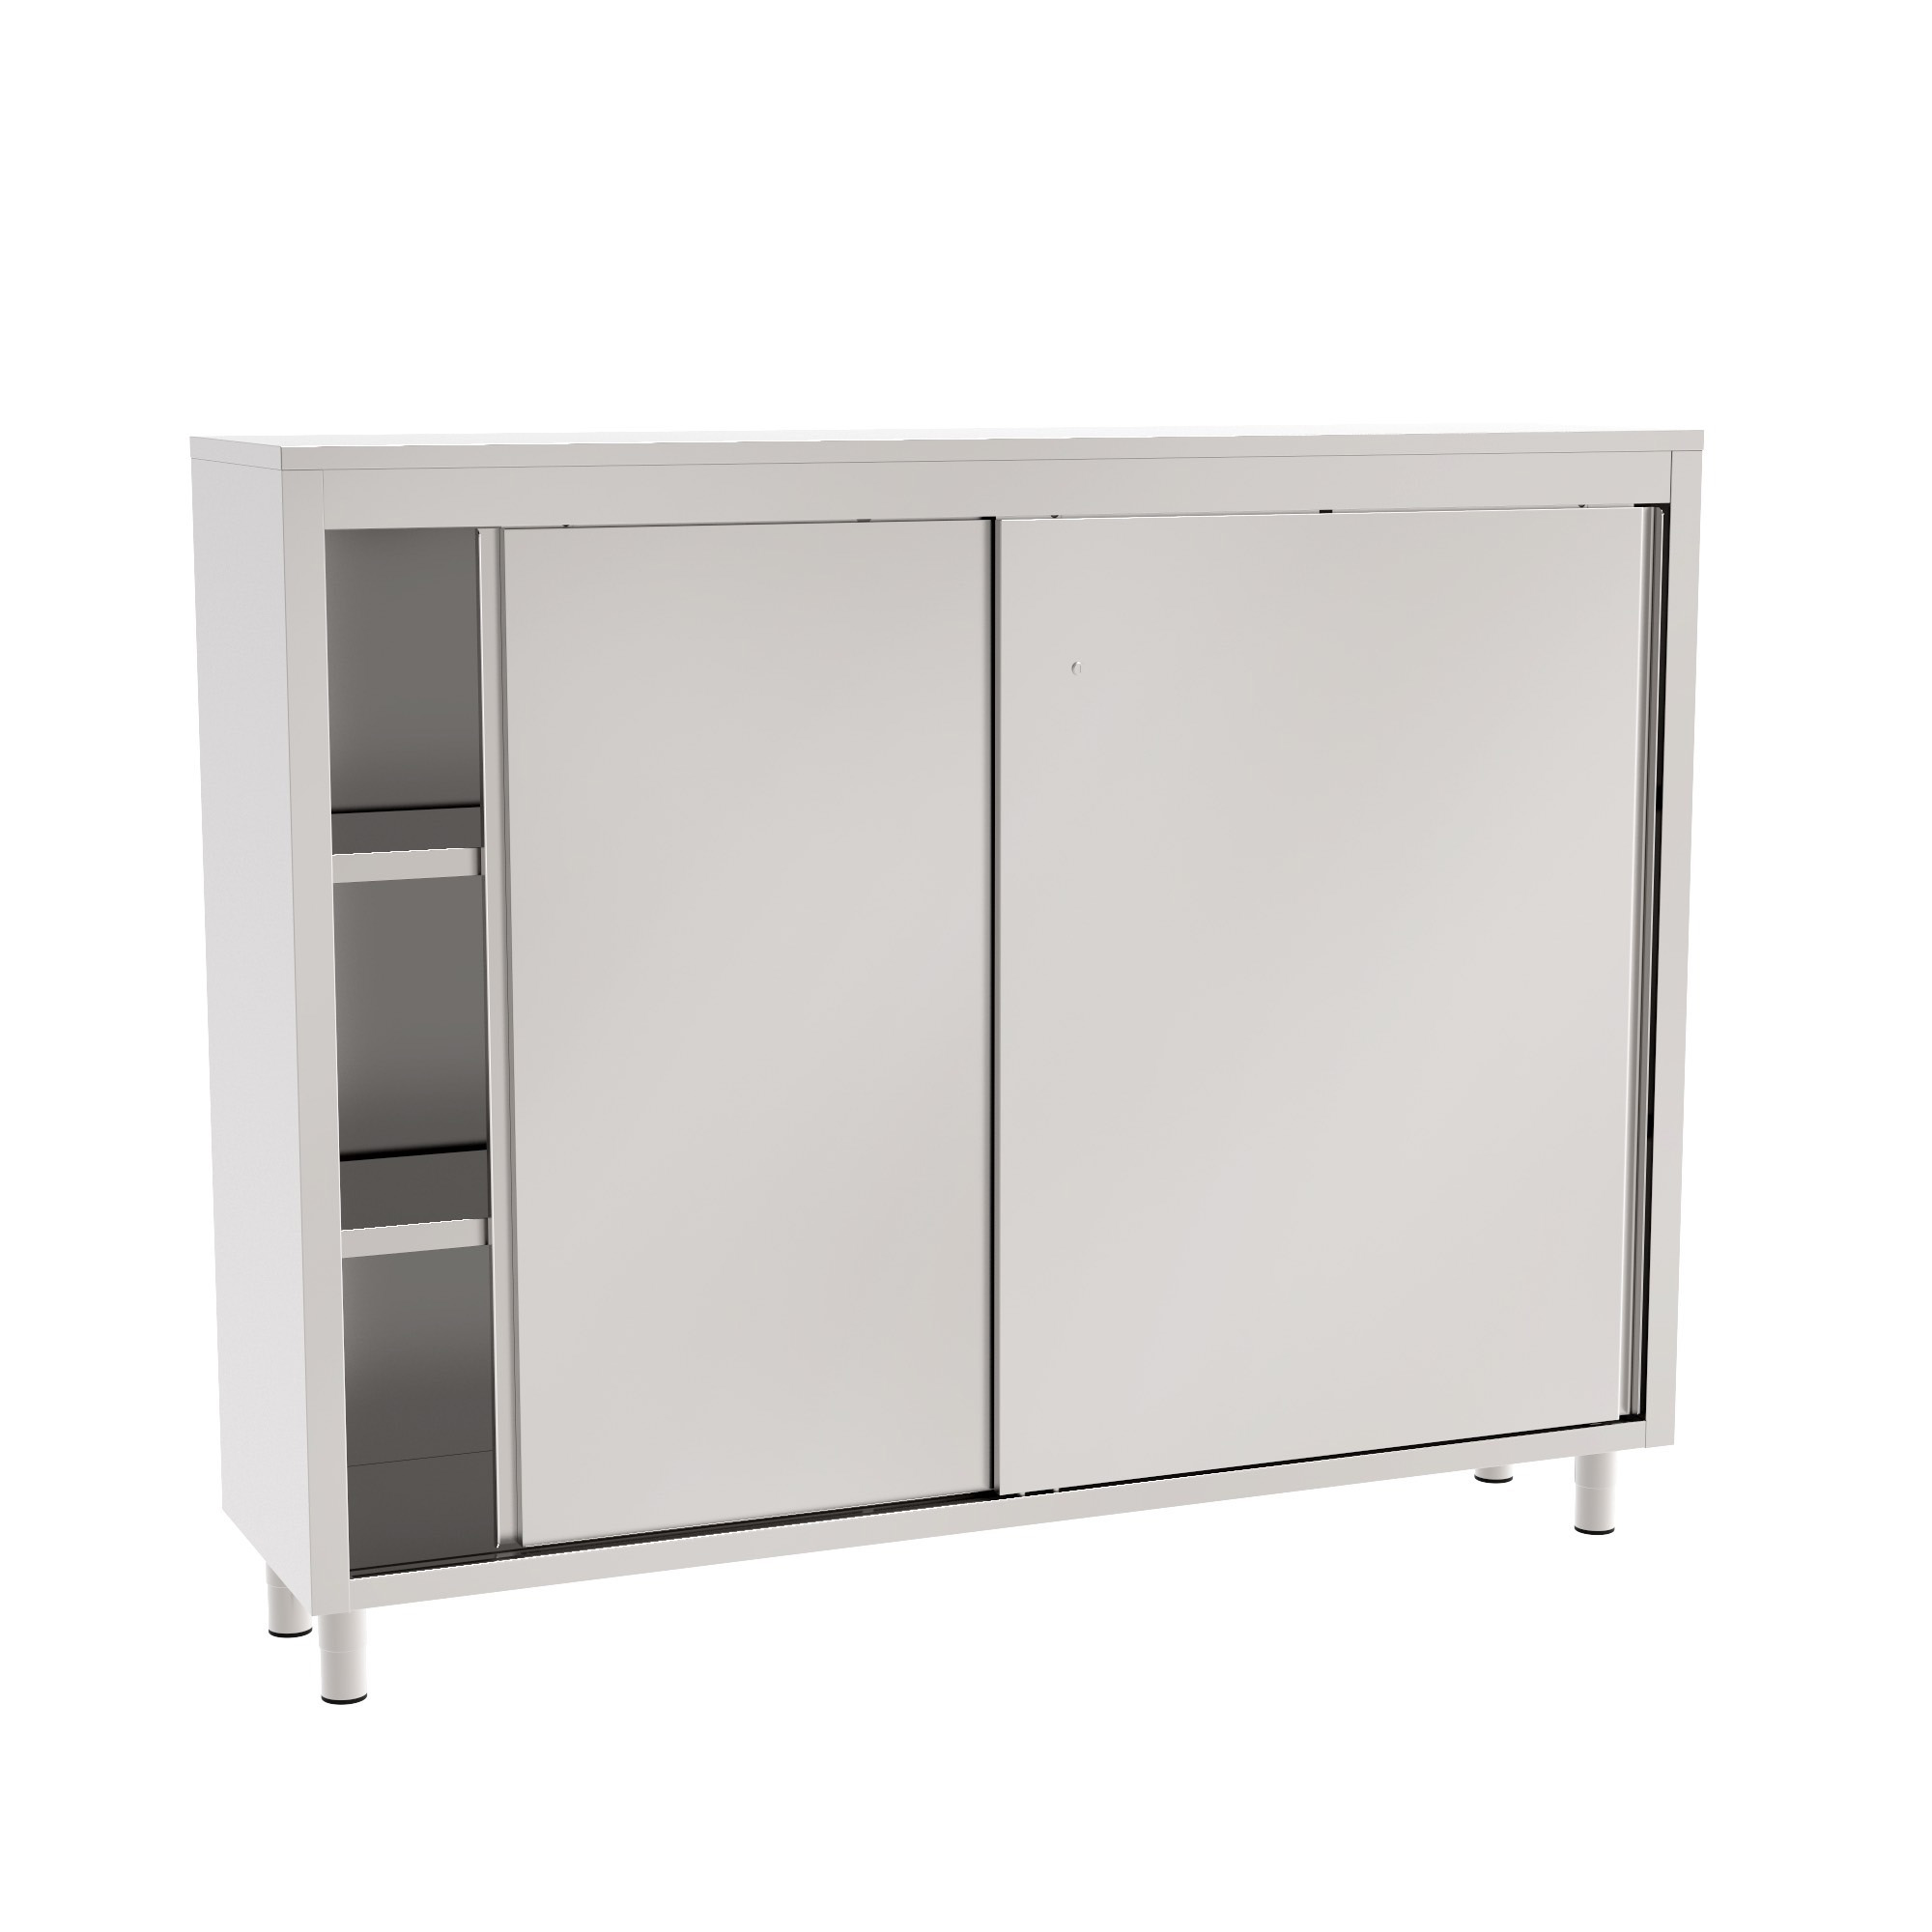 Storage Cabinet With Sliding Doors And Plain Shelves Cleanroom Components